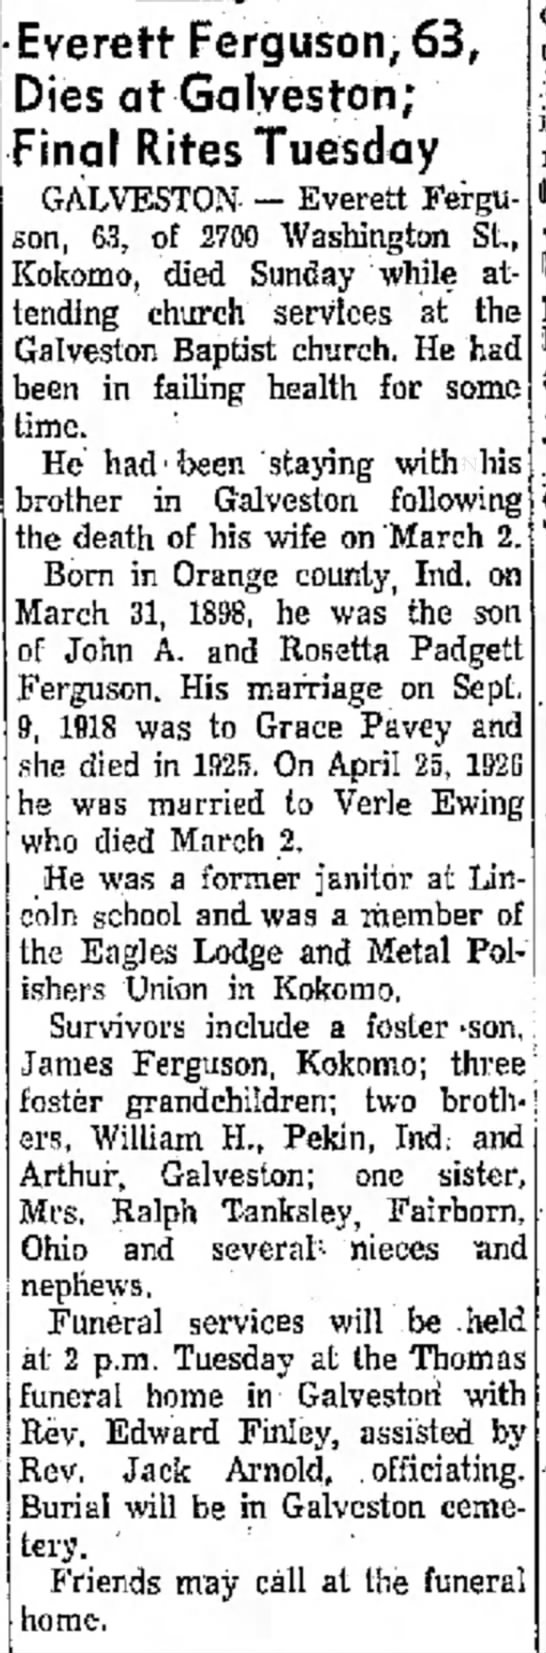 John EVERETT Ferguson obit - to 14, Wednesday Buckey af- he iverett...